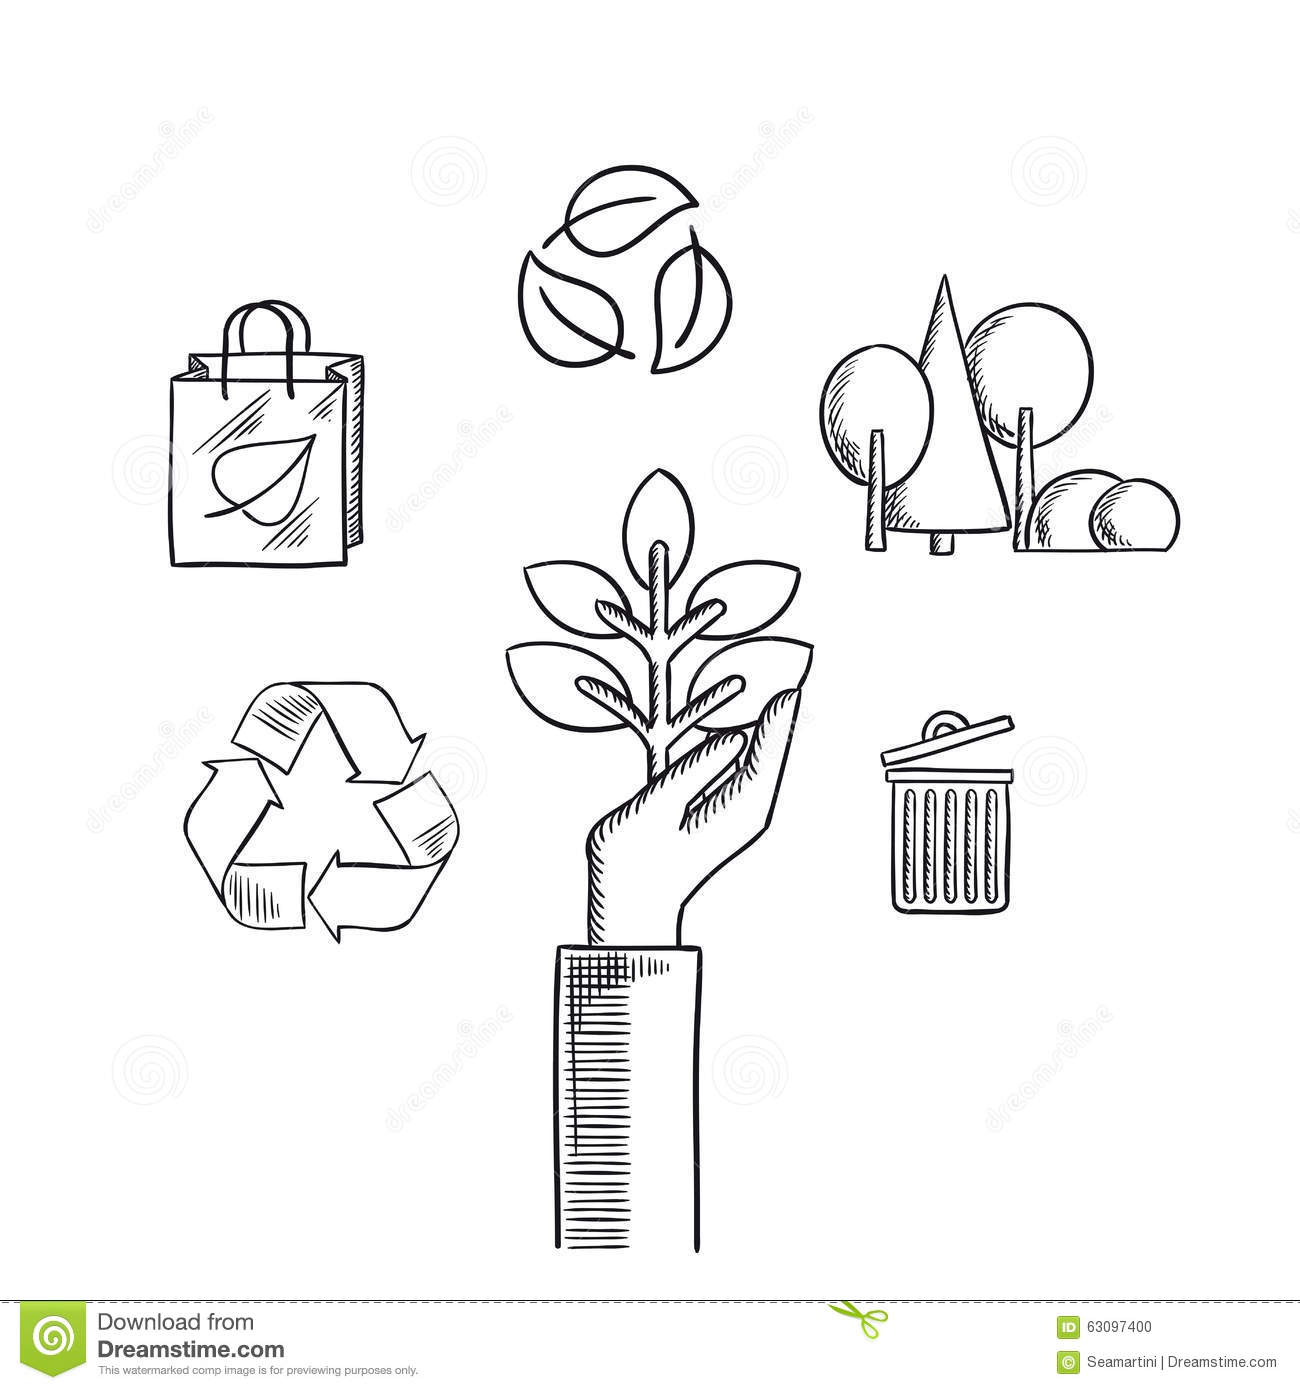 Environment protection concept with plant in hand recycling symbols with arrows and leaves eco shopping bag forest landscape with trees and trash can